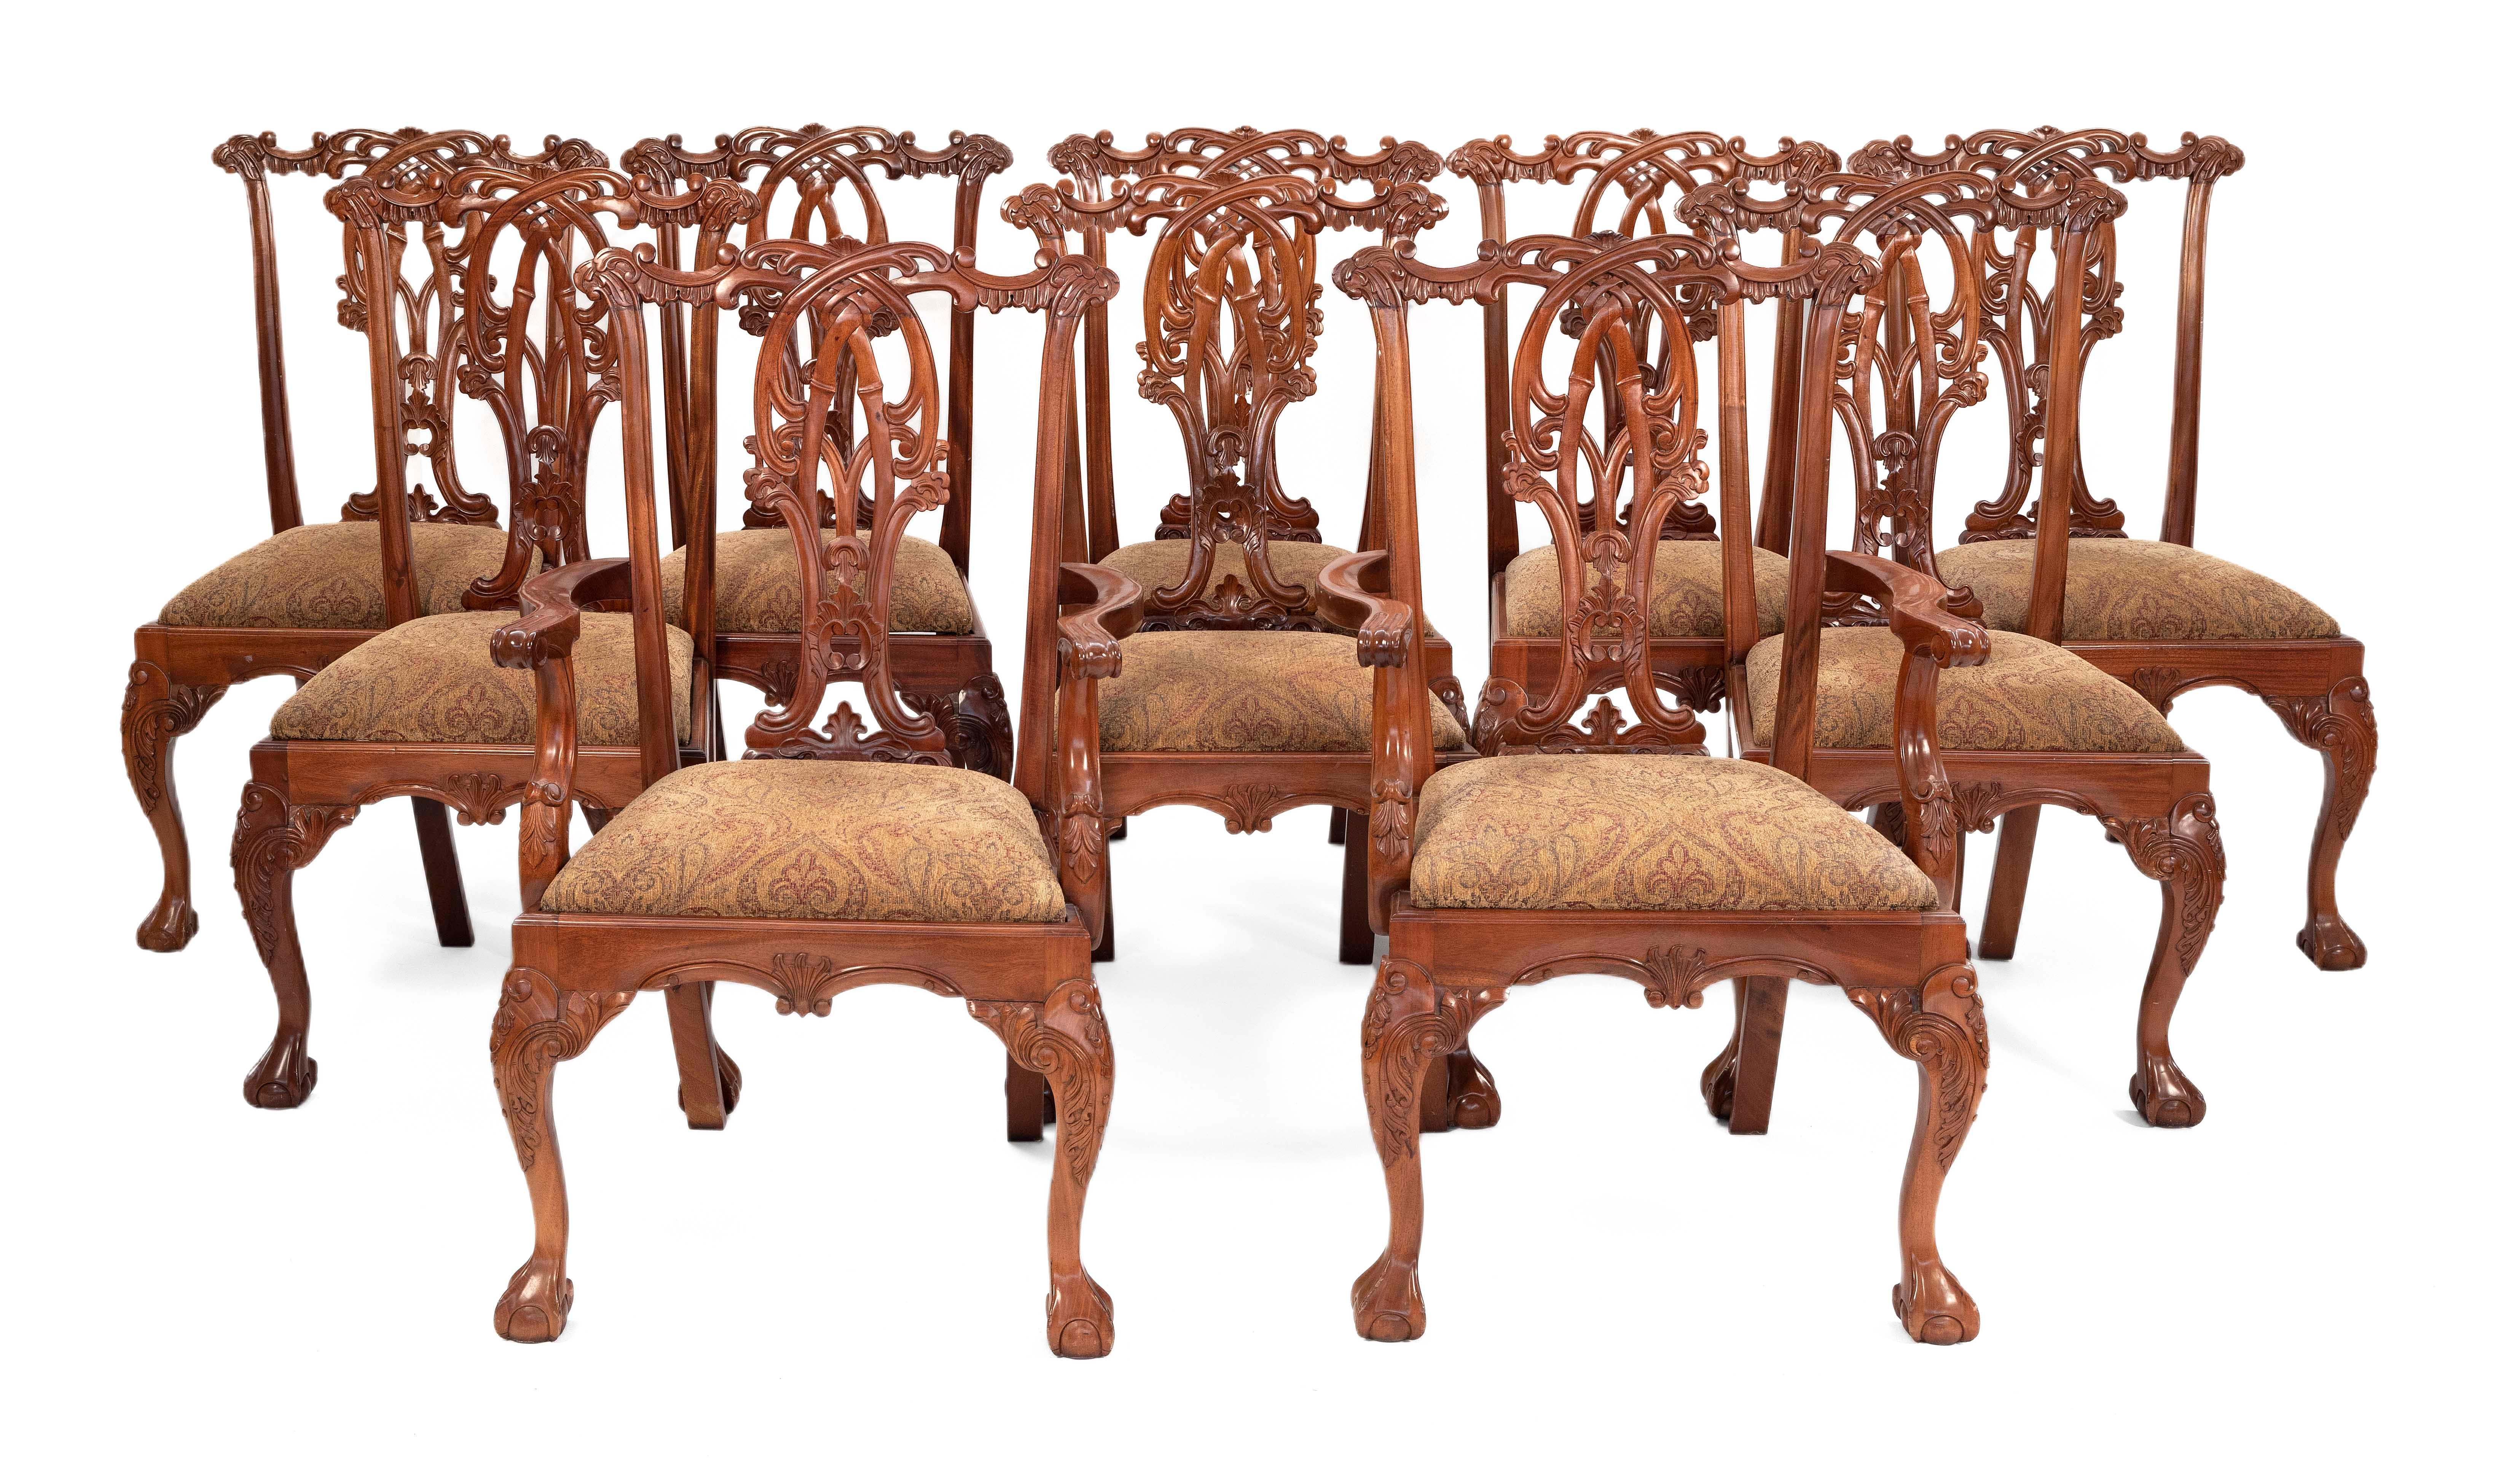 """SET OF TEN CHIPPENDALE-STYLE DINING CHAIRS Back heights 40"""". Seat heights 19.5""""."""